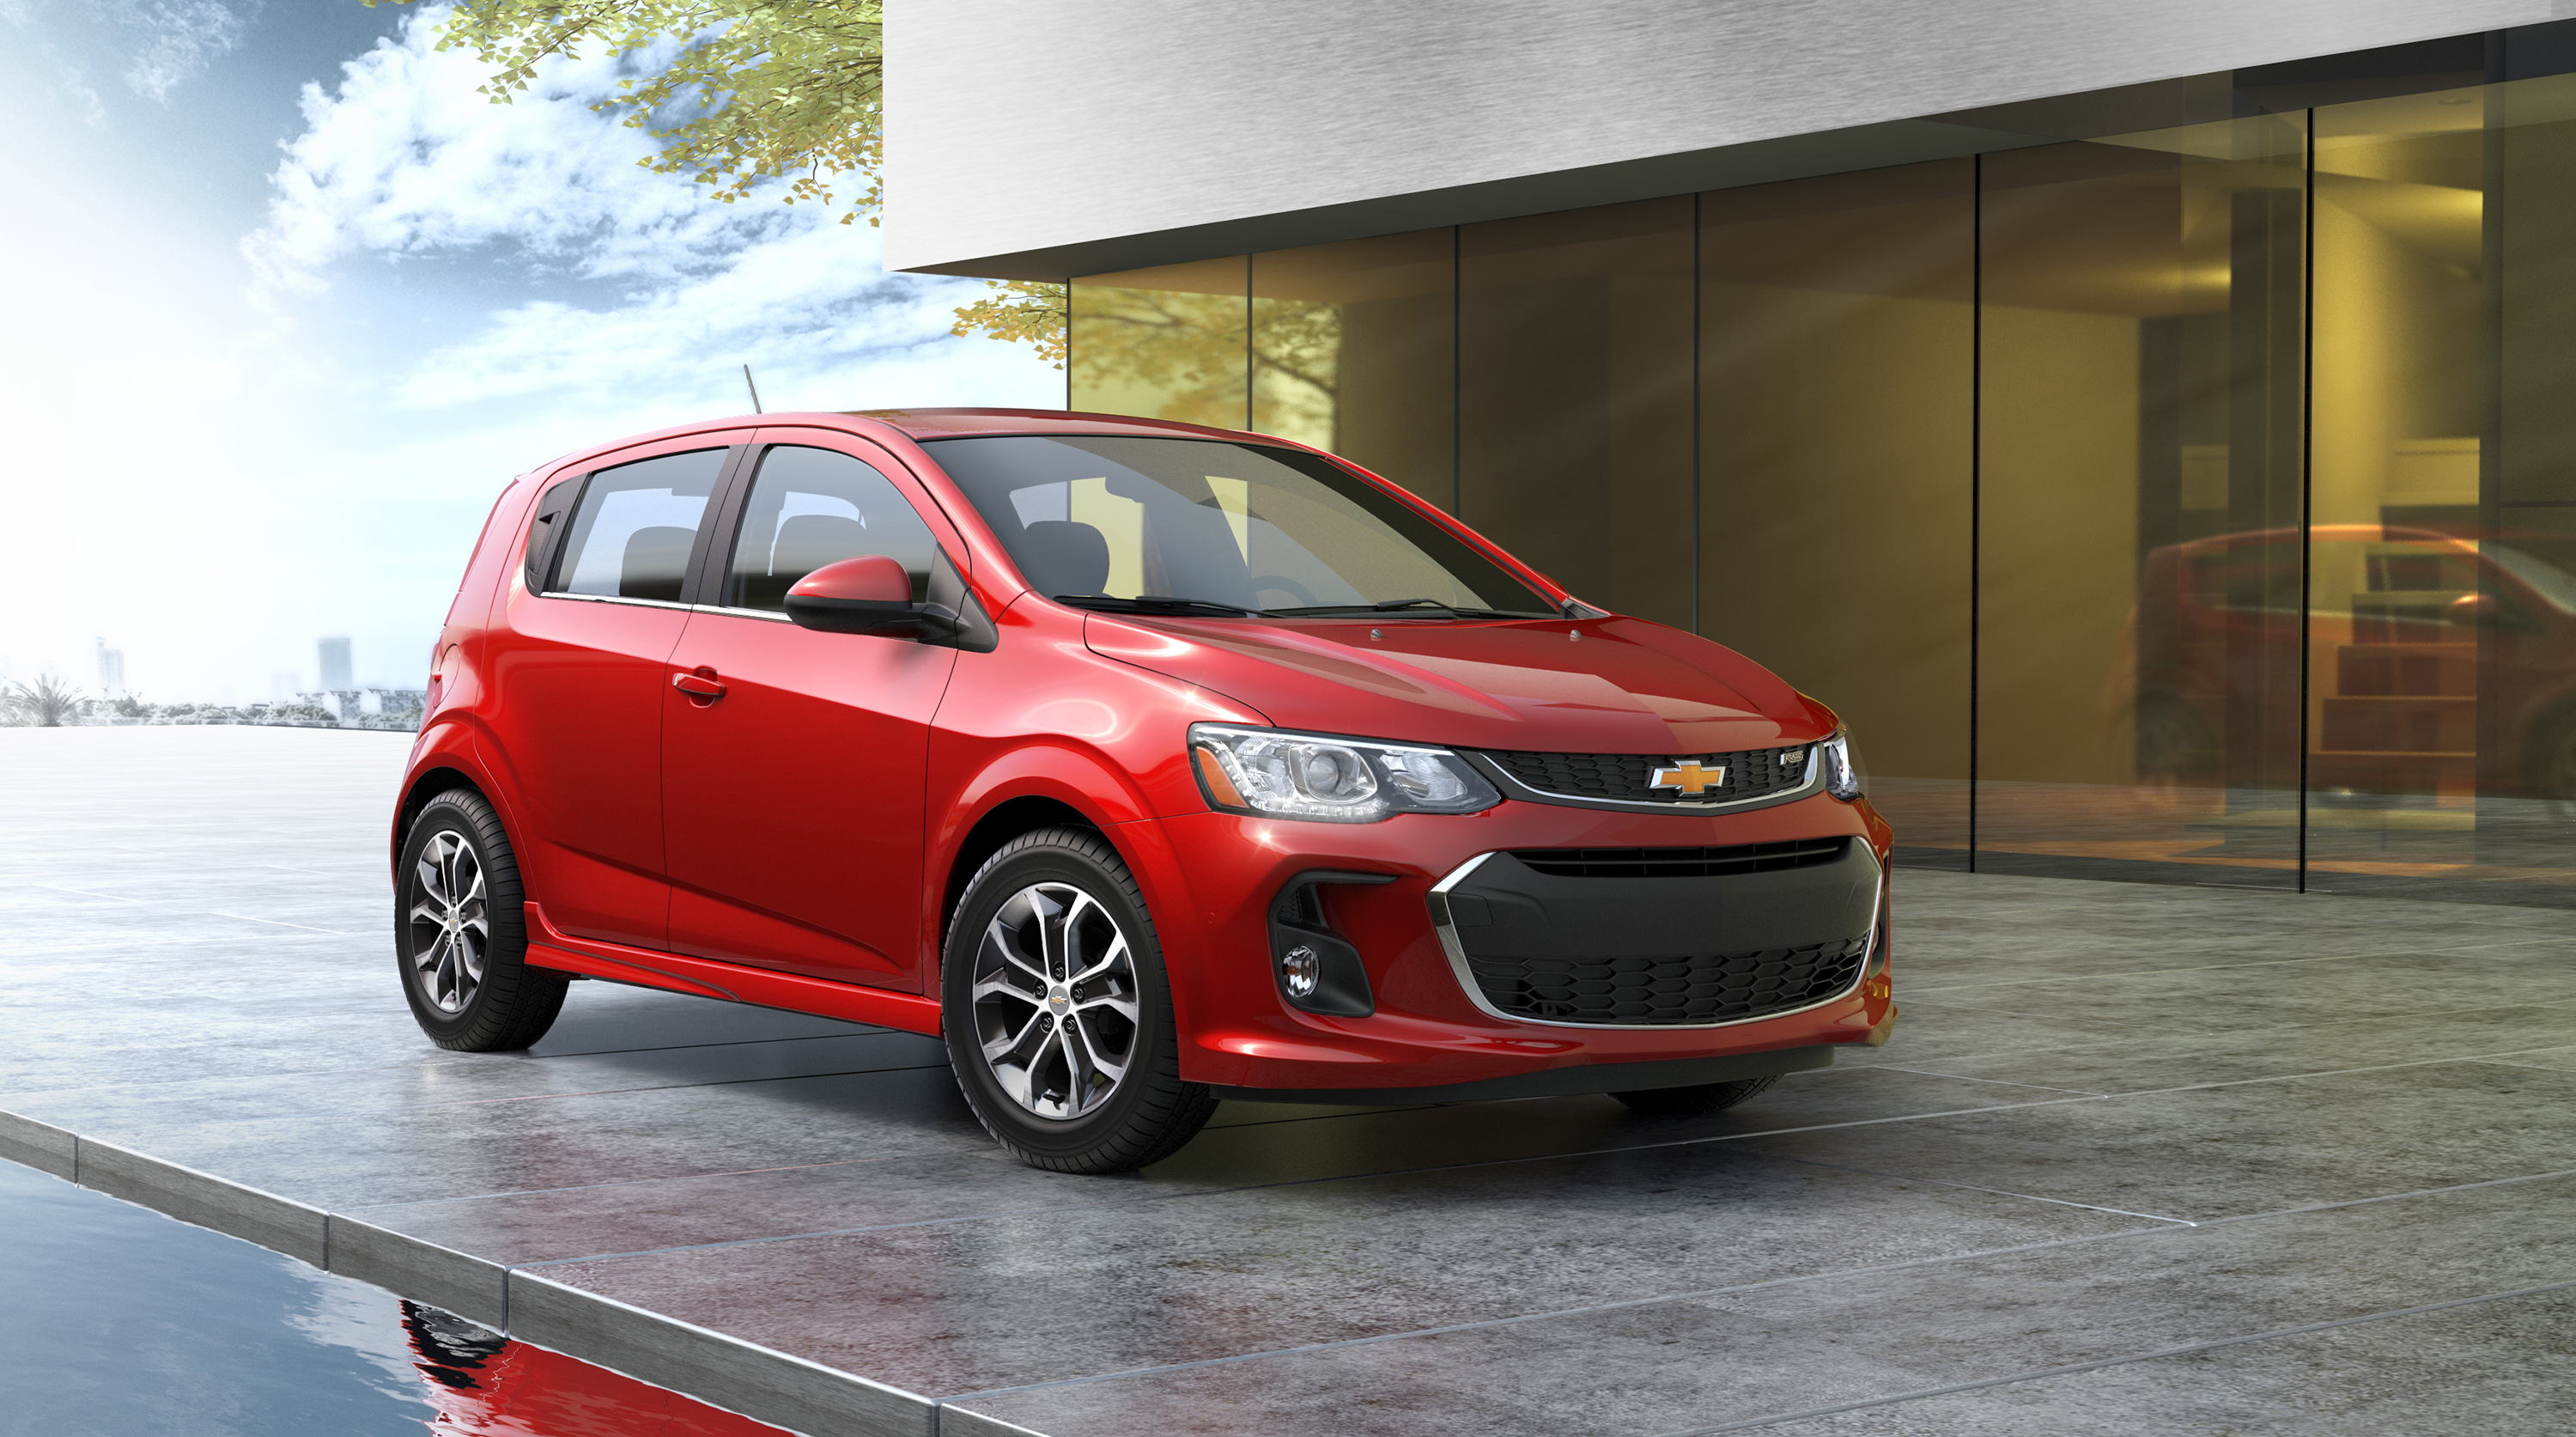 Chevrolet Sonic Repair Manual: Tools and Equipment